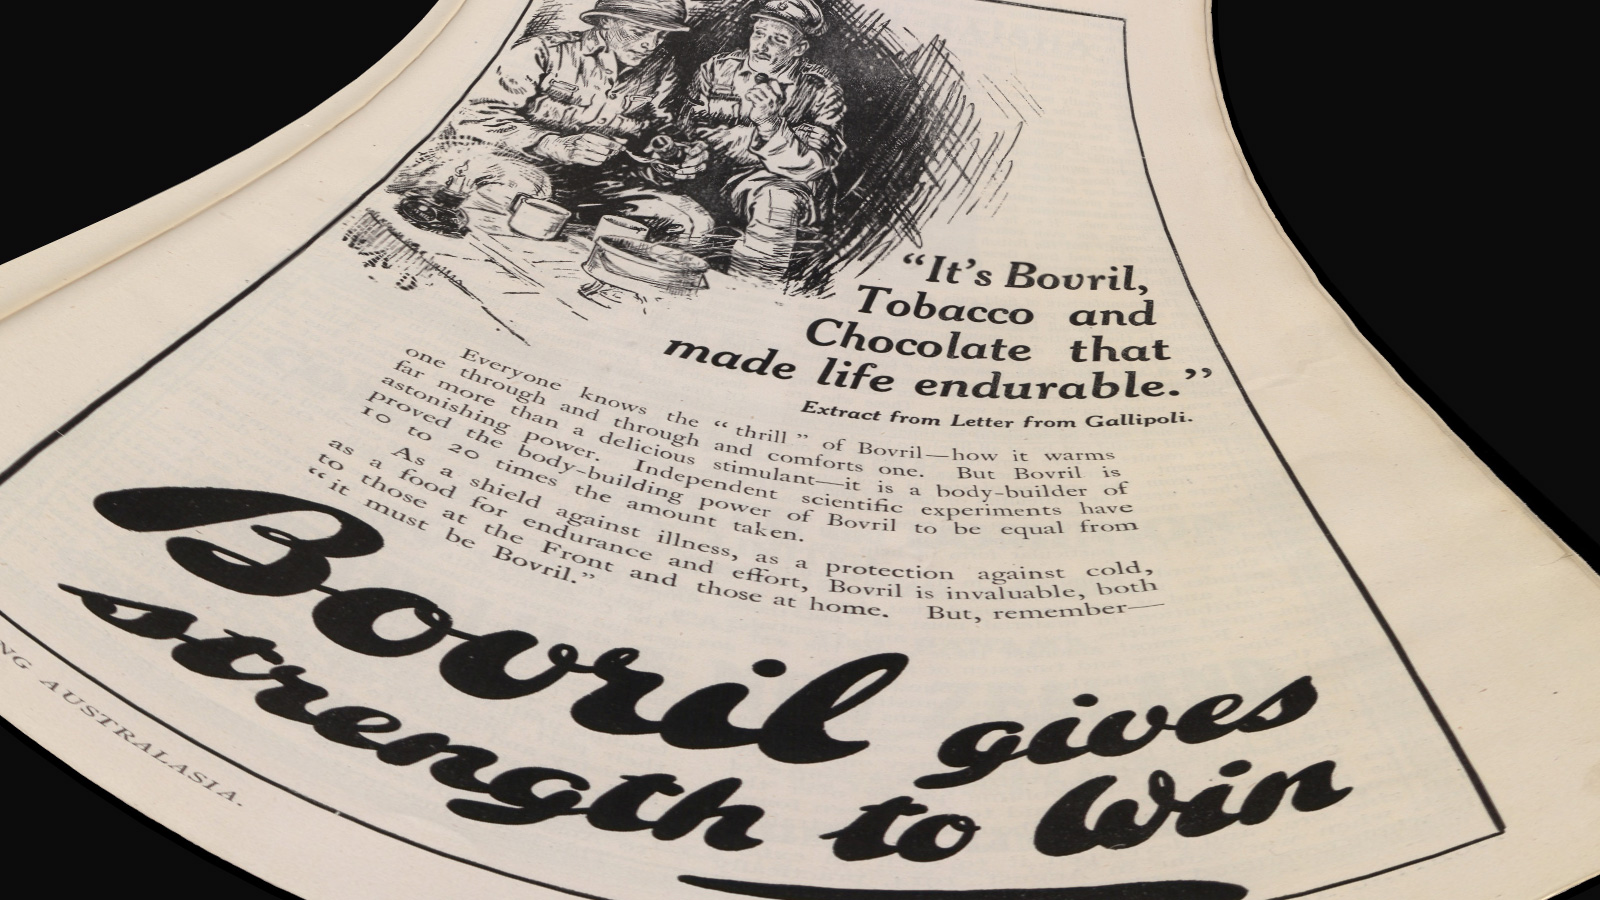 Teaching note image - WW1 advert for Bovril